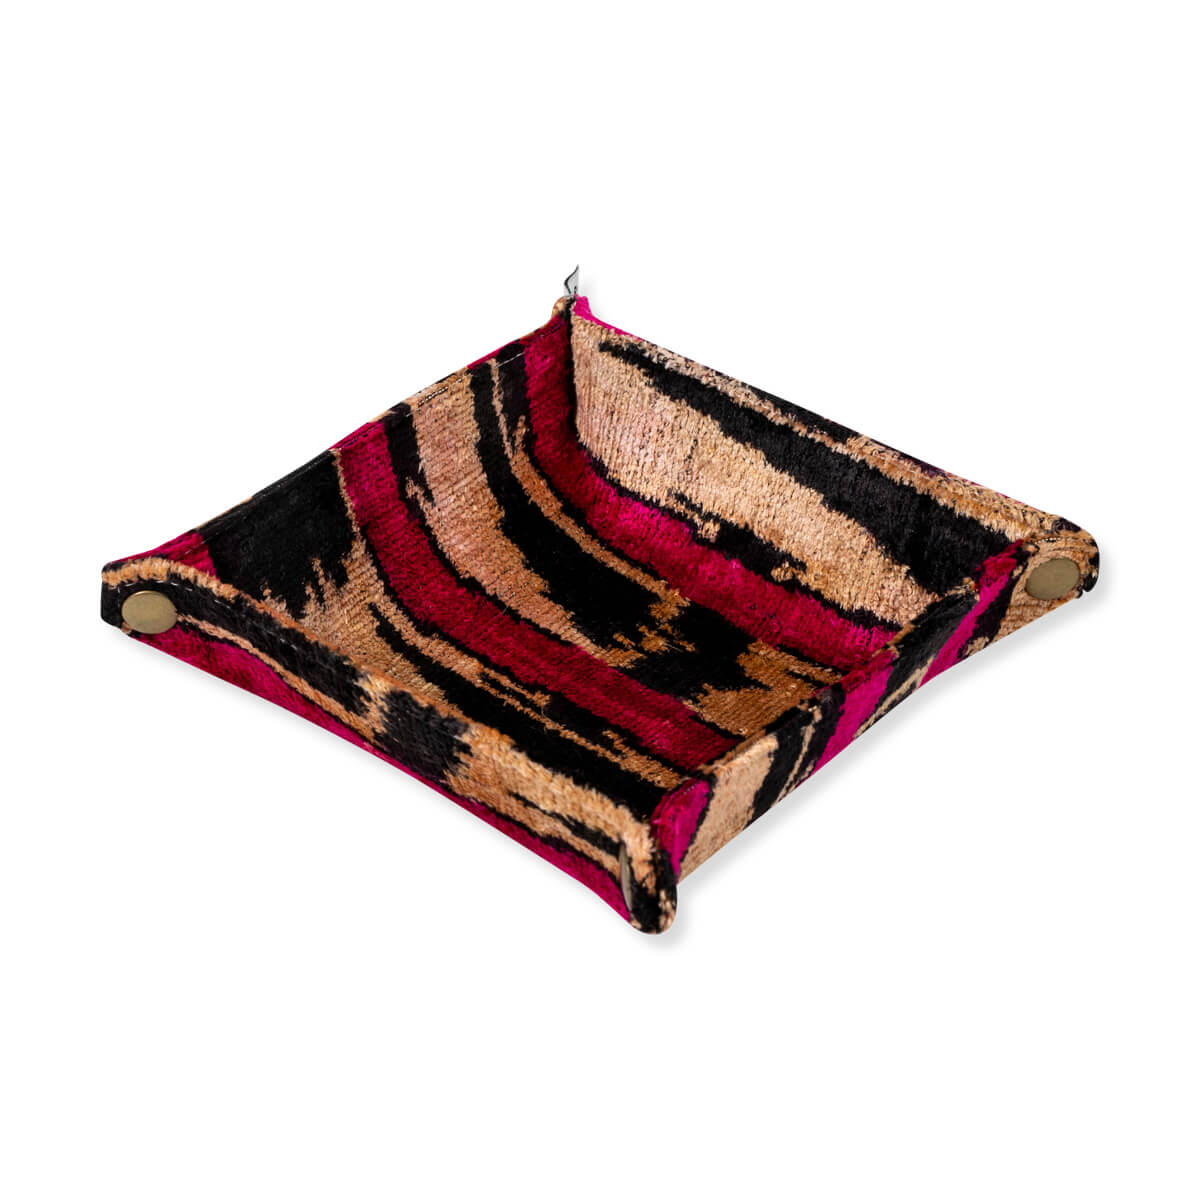 Furbish Studio - Velvet Ikat Tray in Pink and Gold